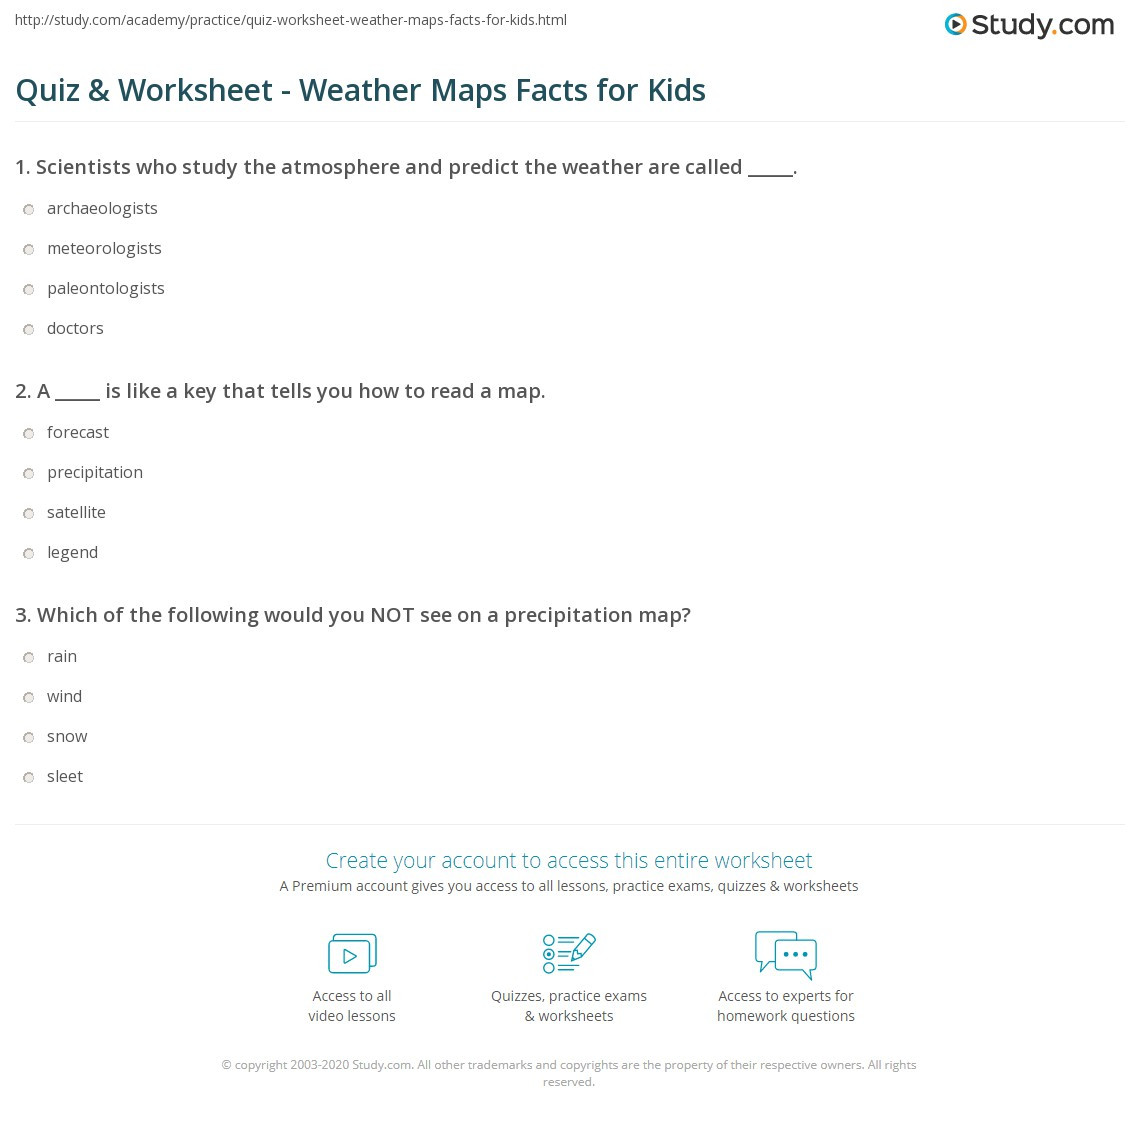 Read A Weather Map Worksheet Quiz & Worksheet Weather Maps Facts for Kids